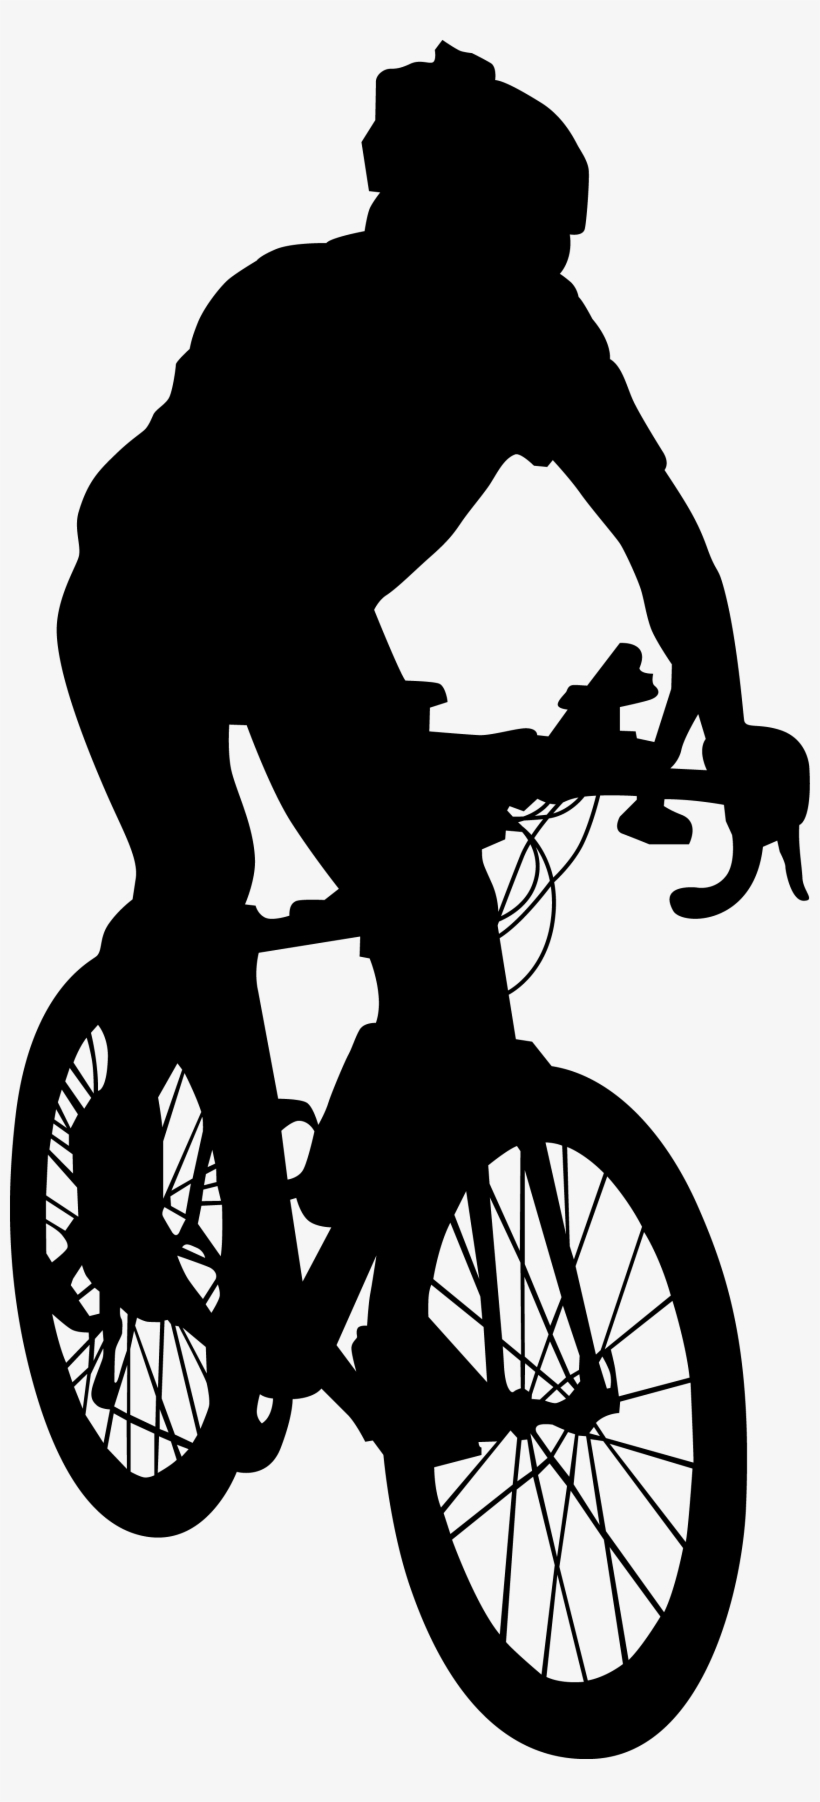 d00924d9e Andy Christensen Racing - Riding Bike Silhouette Png - Free ...